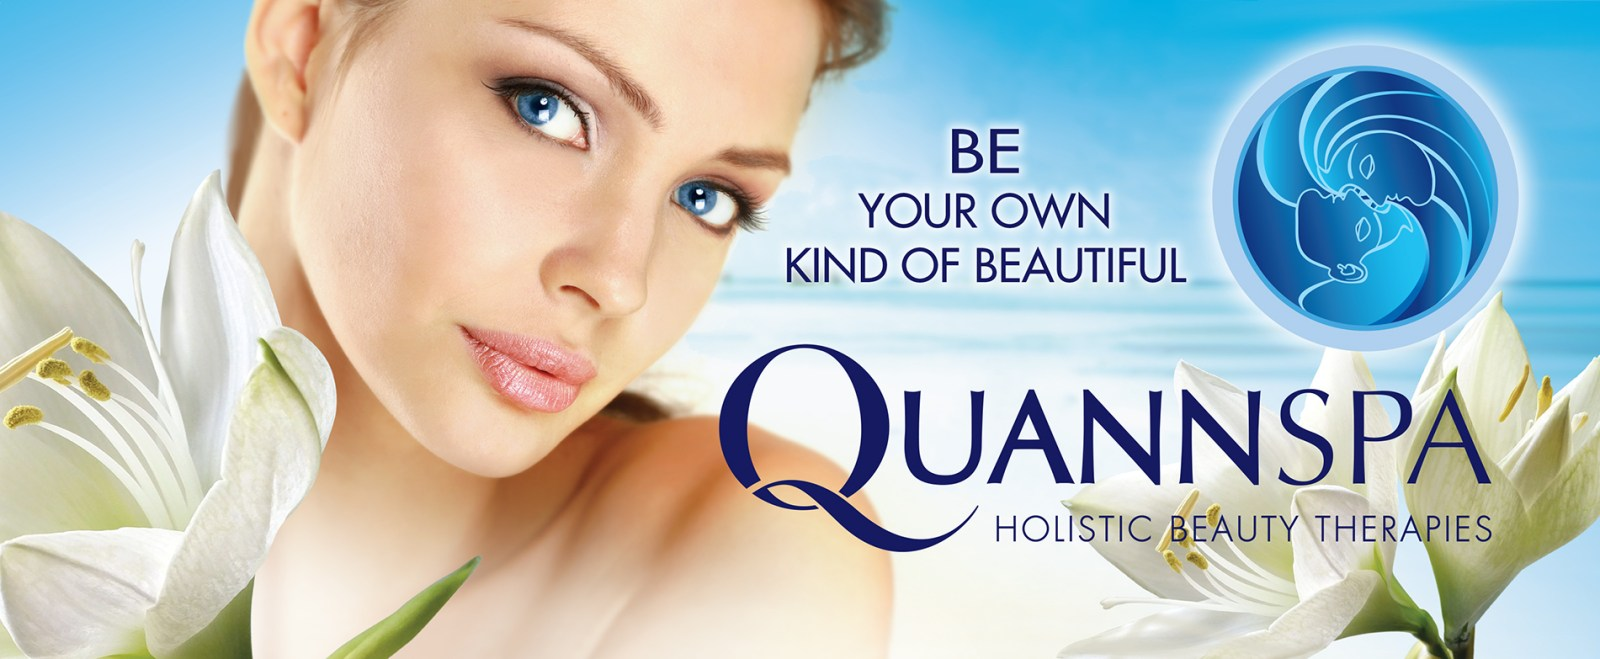 QuannSpa logo and model with lotuses